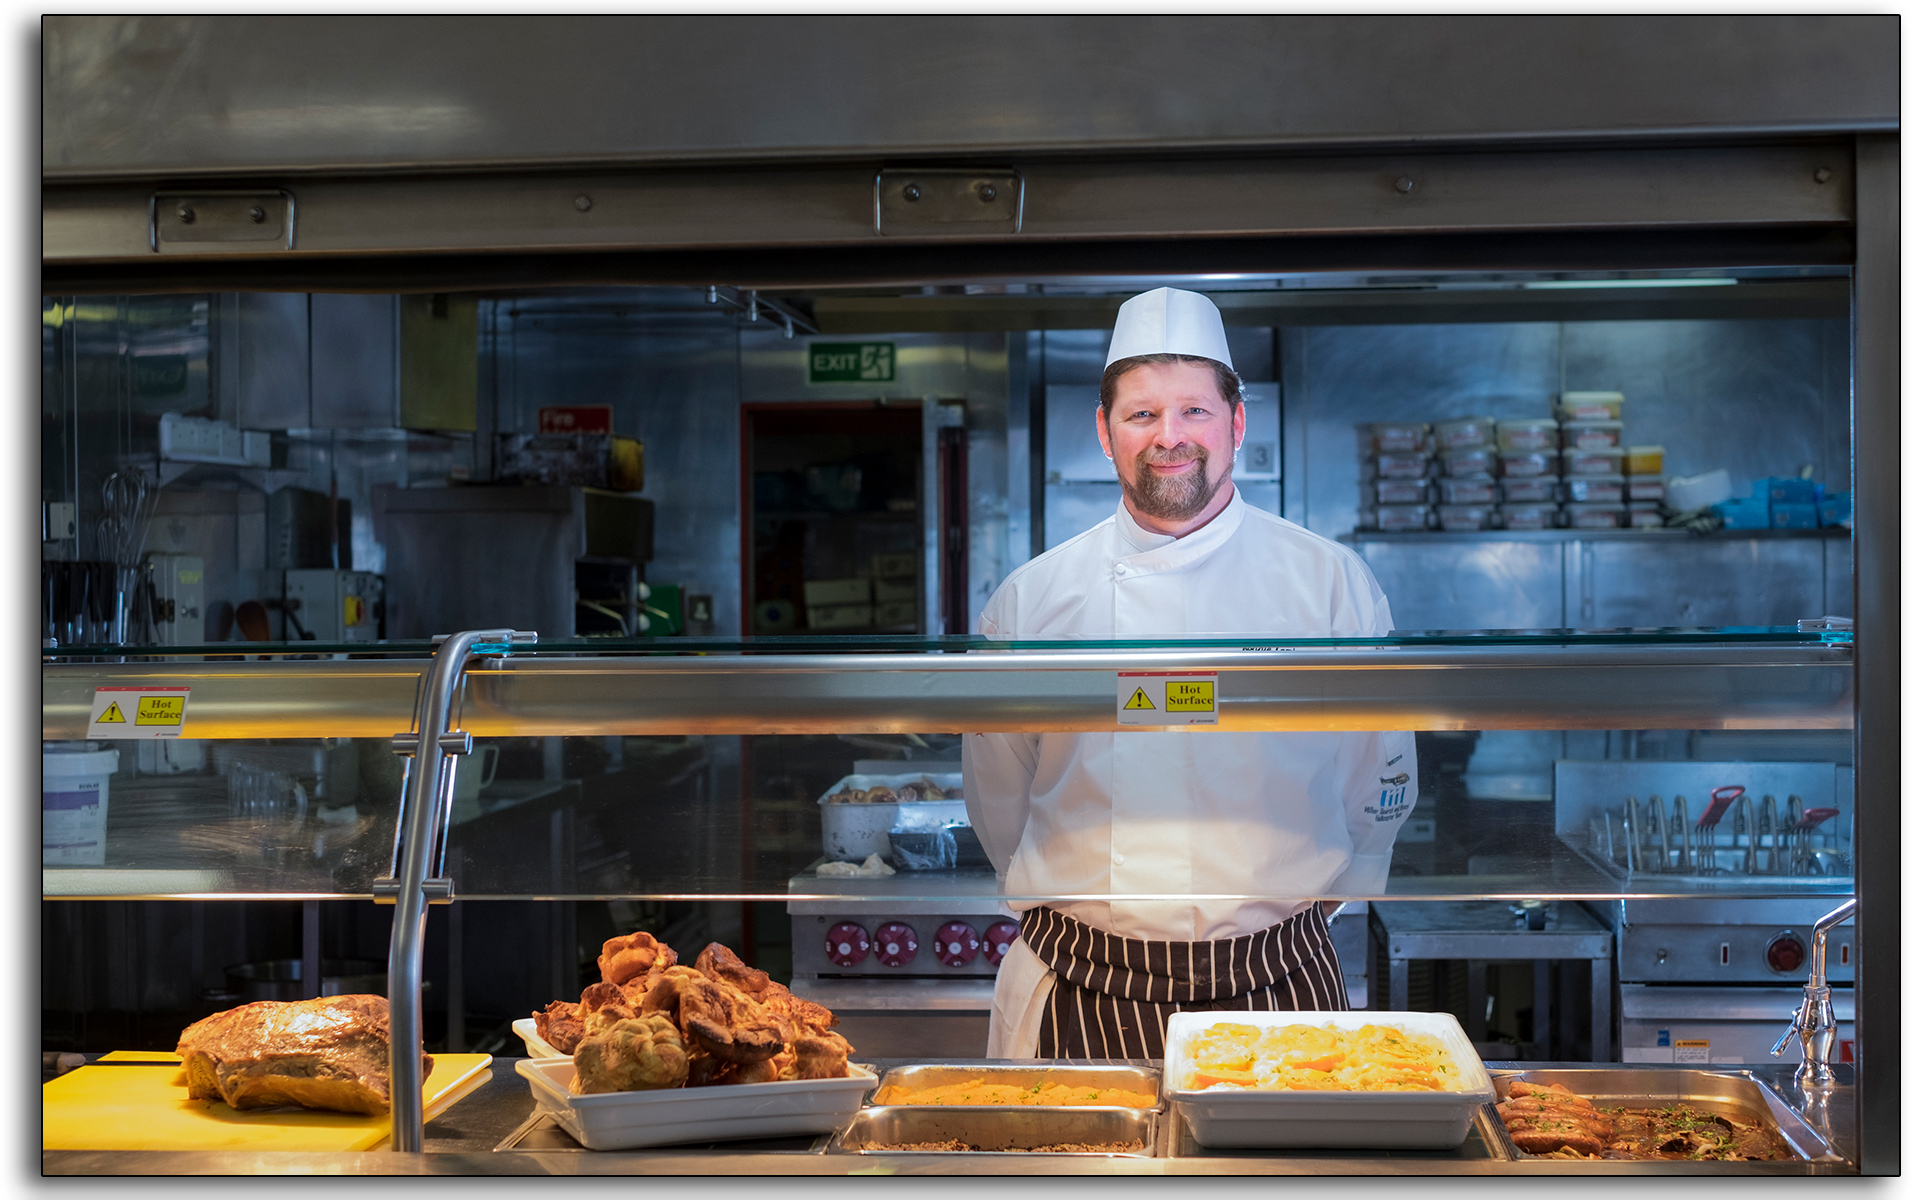 Catering, chef, campboss, hotel manager, incharge, cooks, kitchen, working, industrial, aramark, offshore, north sea, hospitality, oil rig, BP Miller, Petrofac, hotel, Photo by Lee Ramsden..jpg